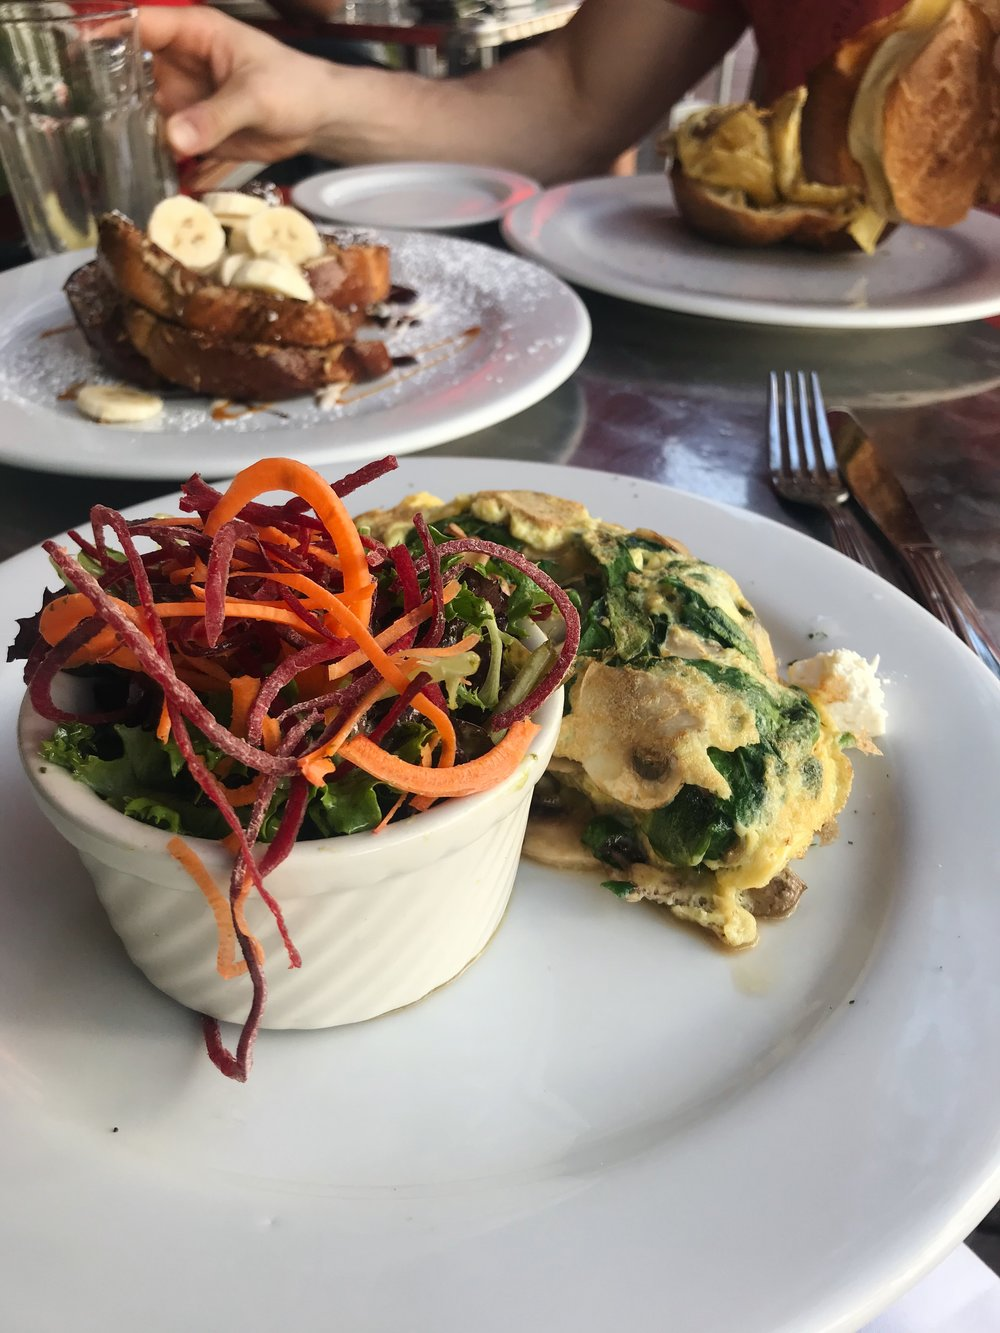 the three egg omelette, salad and thick French toast and Oliver's popovers in the background.